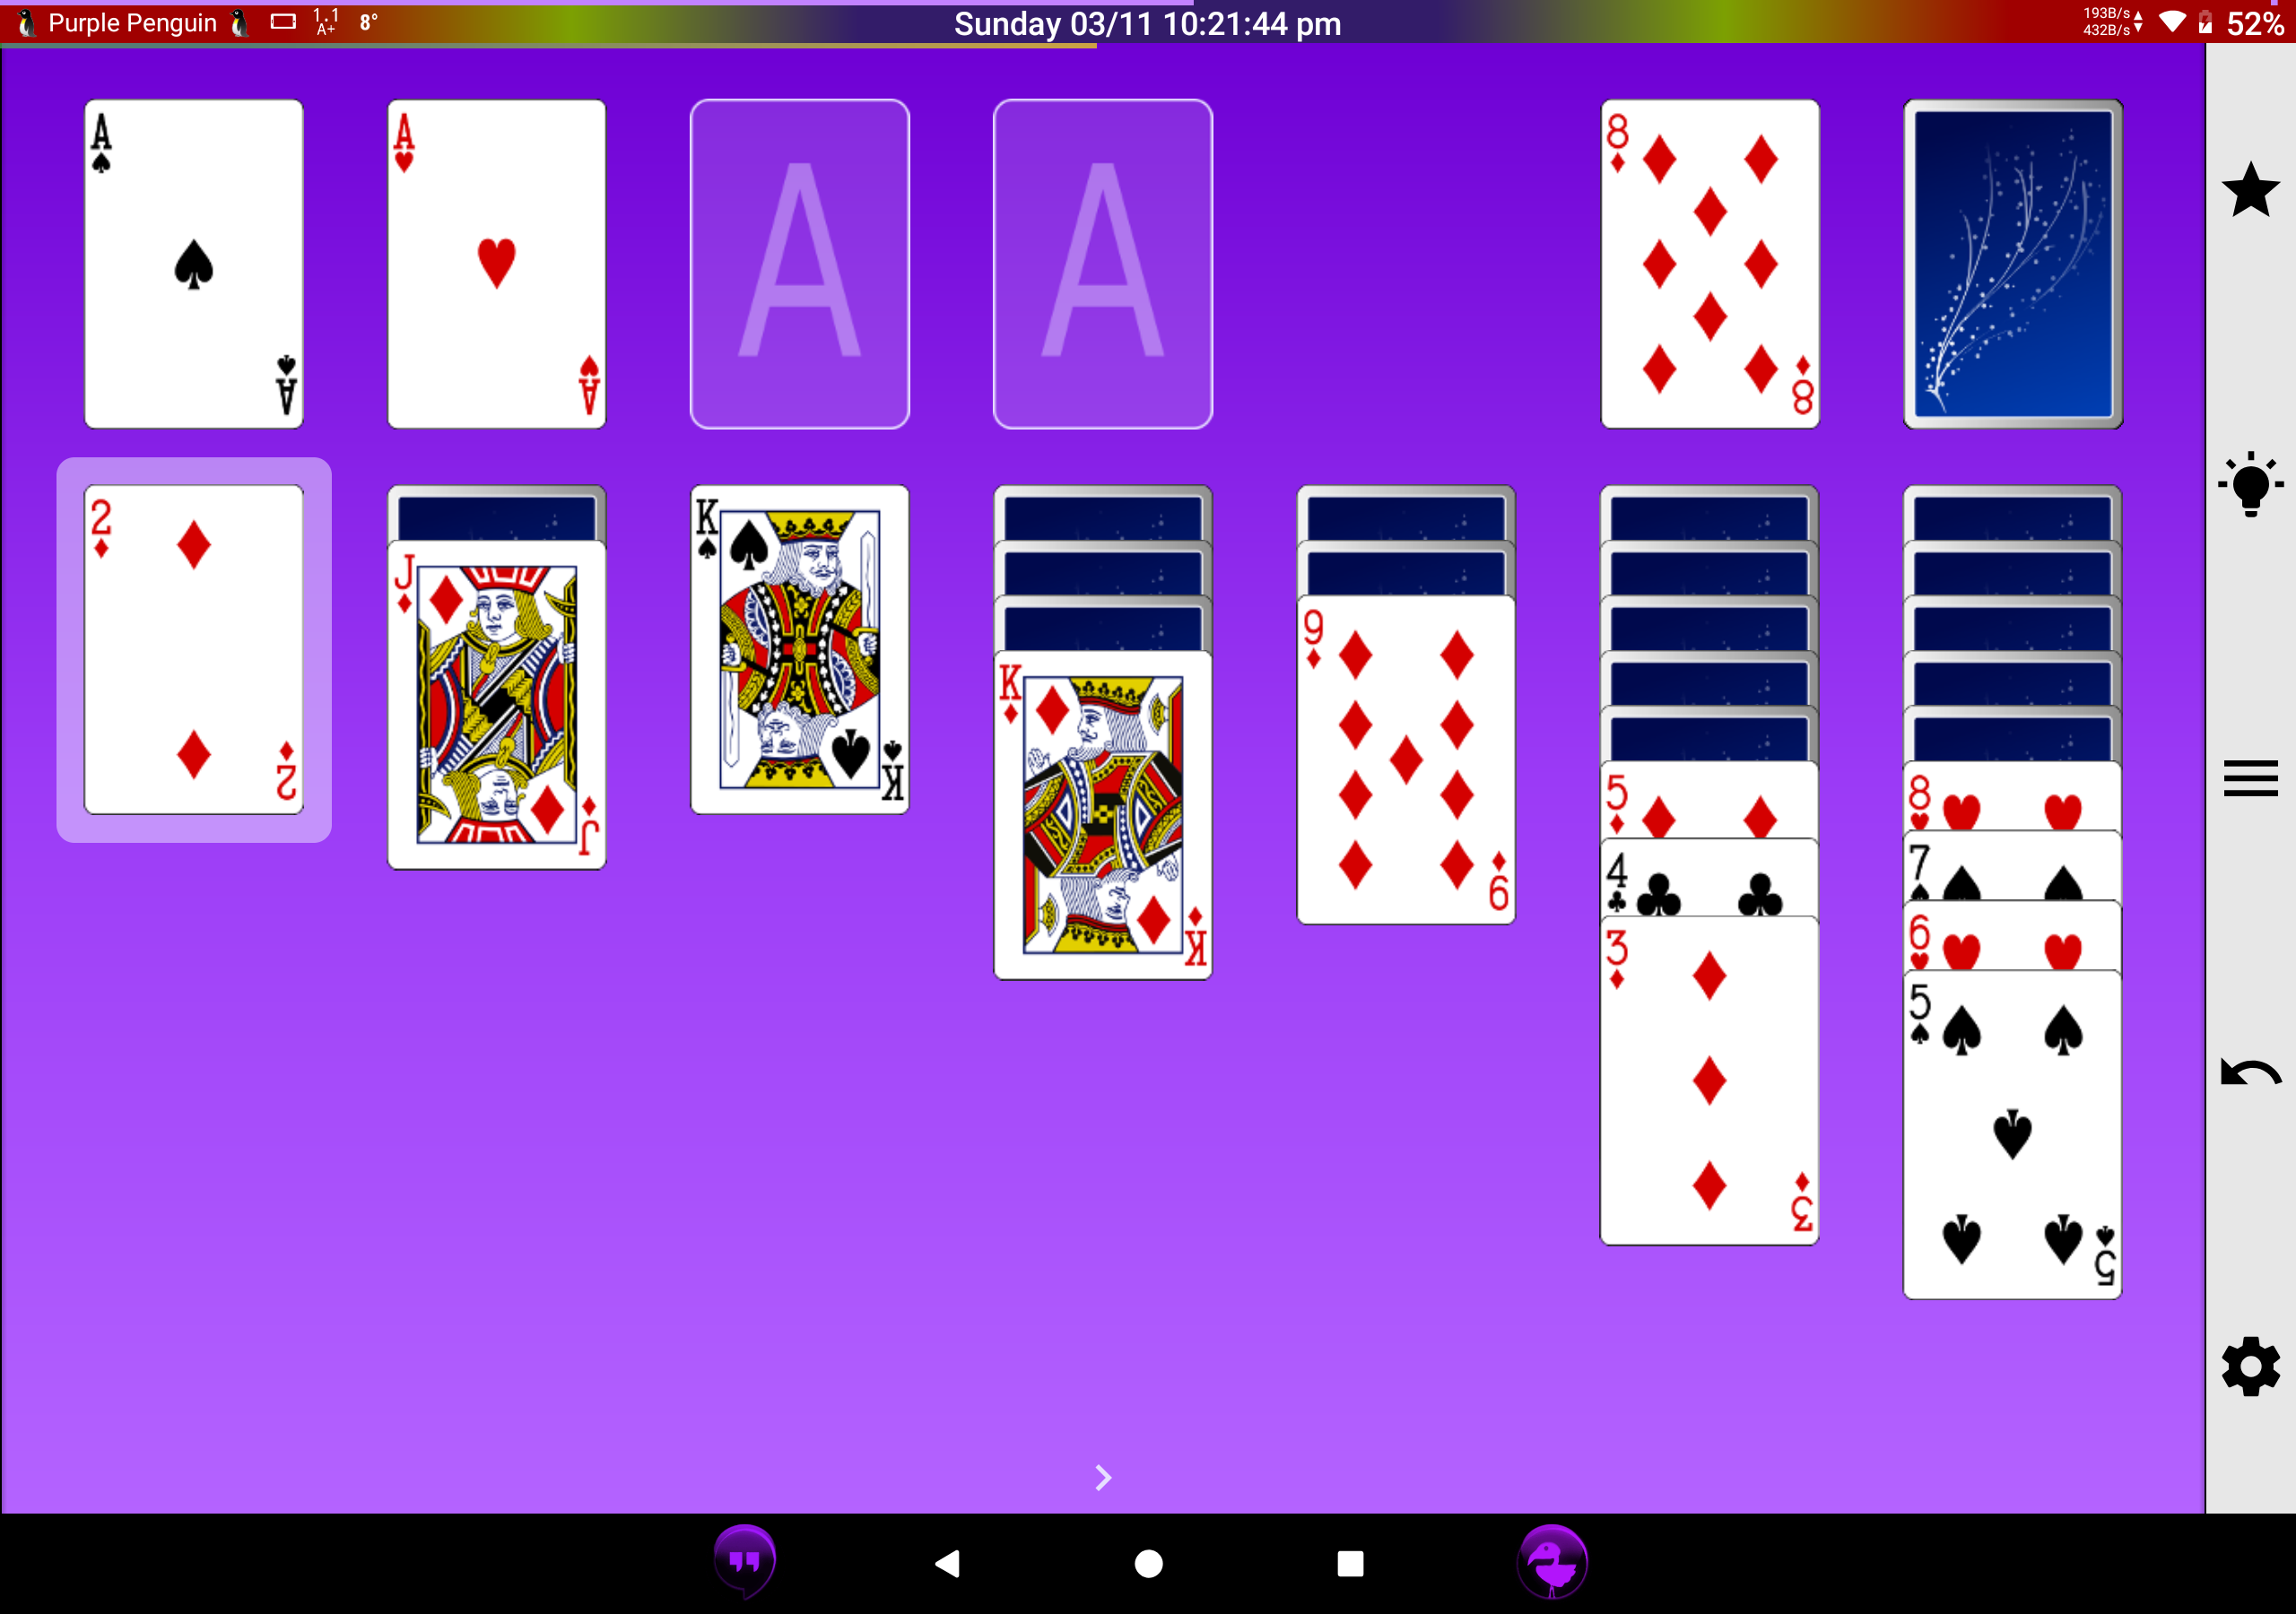 A screenshot of a game of Klondlike (Patience)